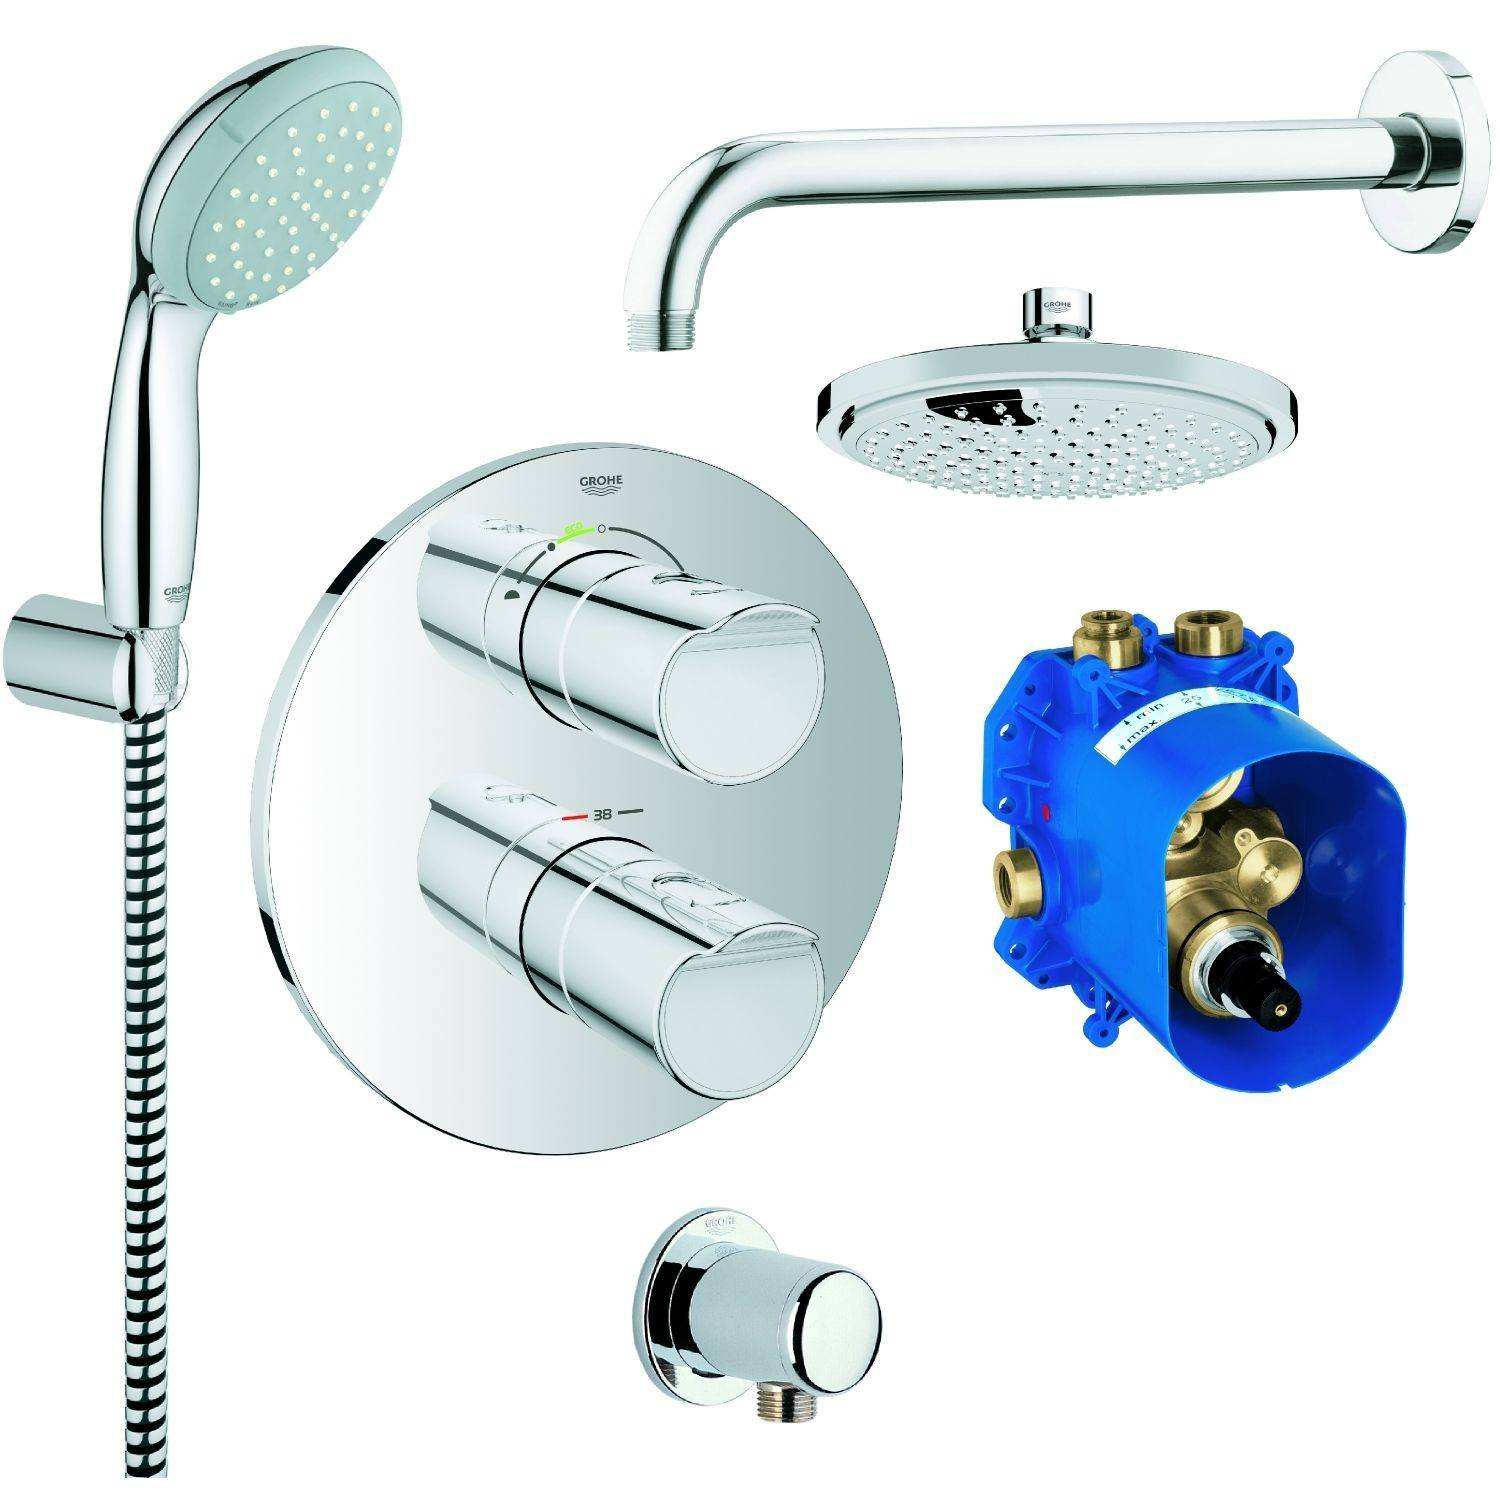 Thermostatbatterie Dusche Grohe Brause Set Runde form M Grohtherm 2000